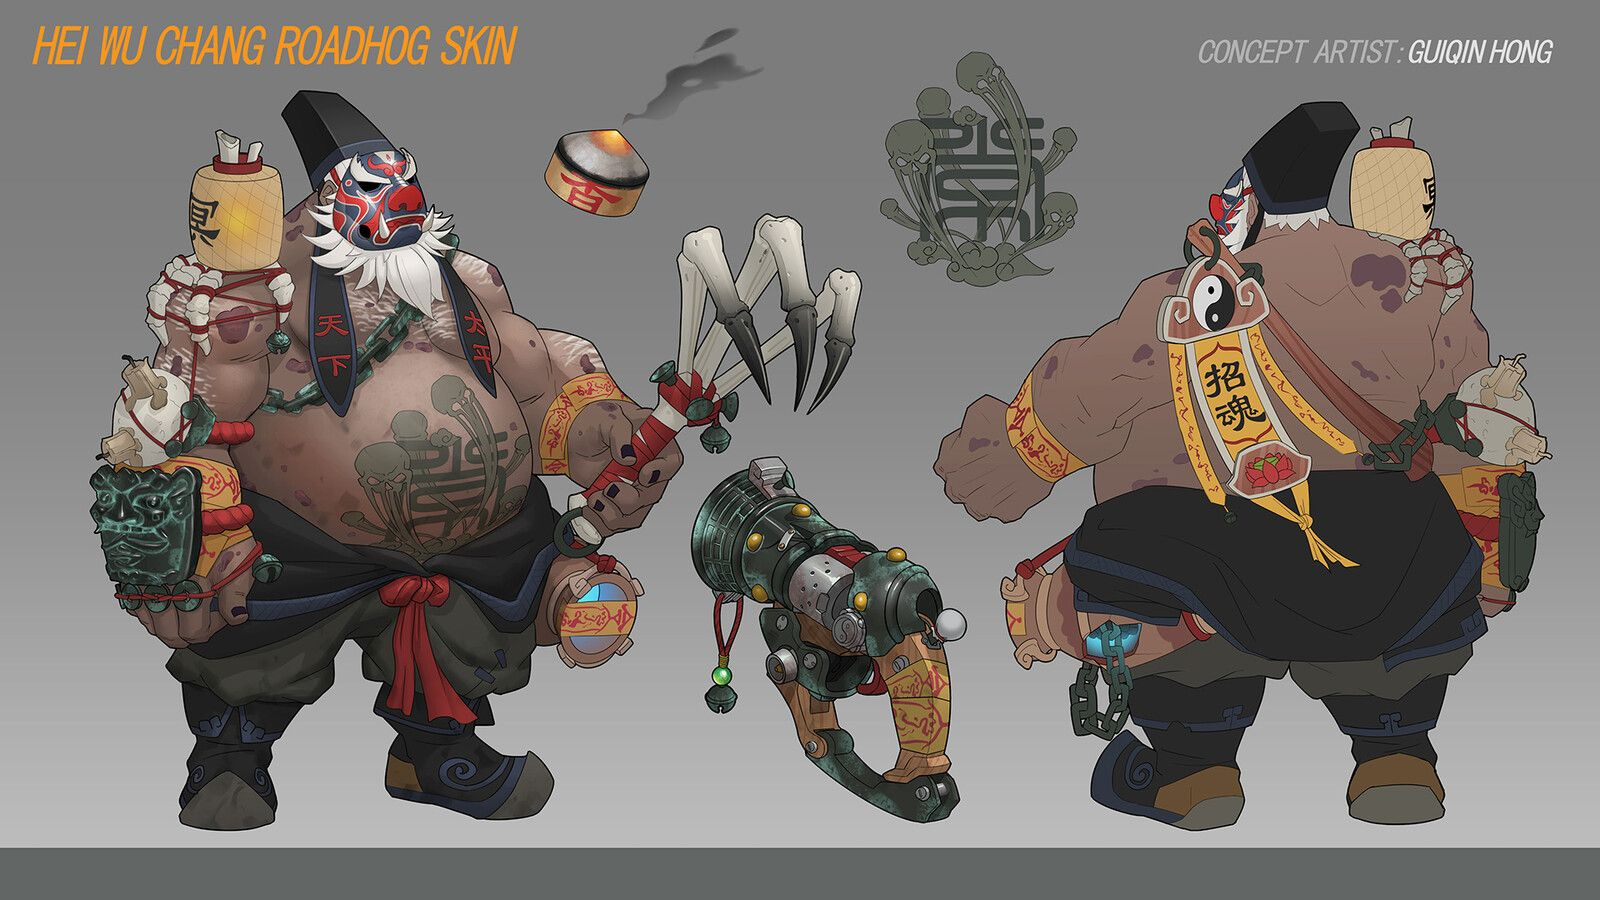 Overwatch Halloween Skins 2020 Parah Overwatch Junkrat and Roadhog fan skin, Guiqin Hong on ArtStation